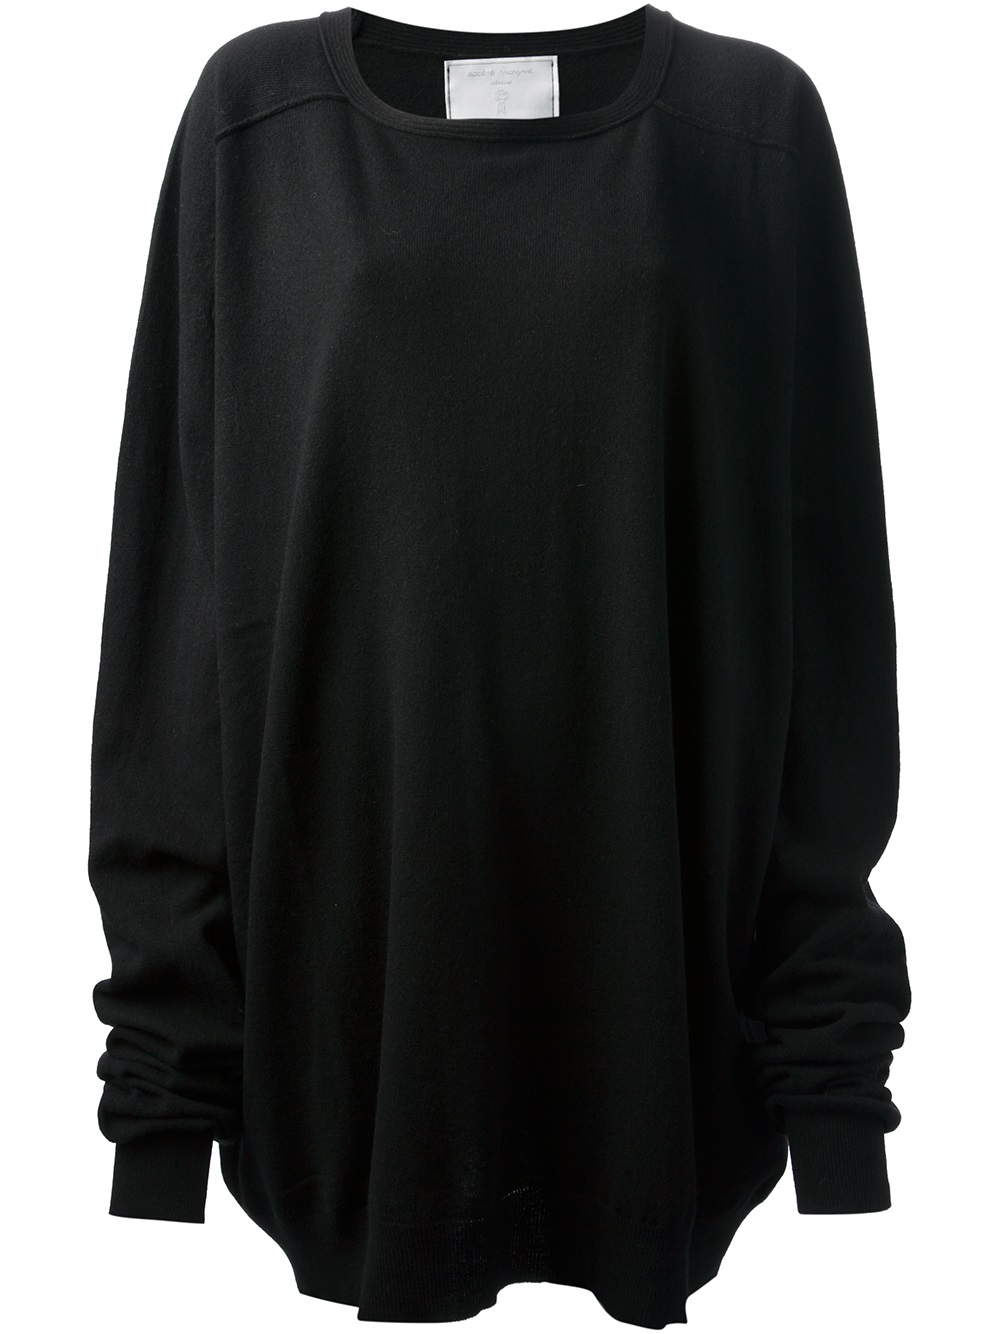 Lyst Societe Anonyme Oversized Jumper Dress Or Top In Black